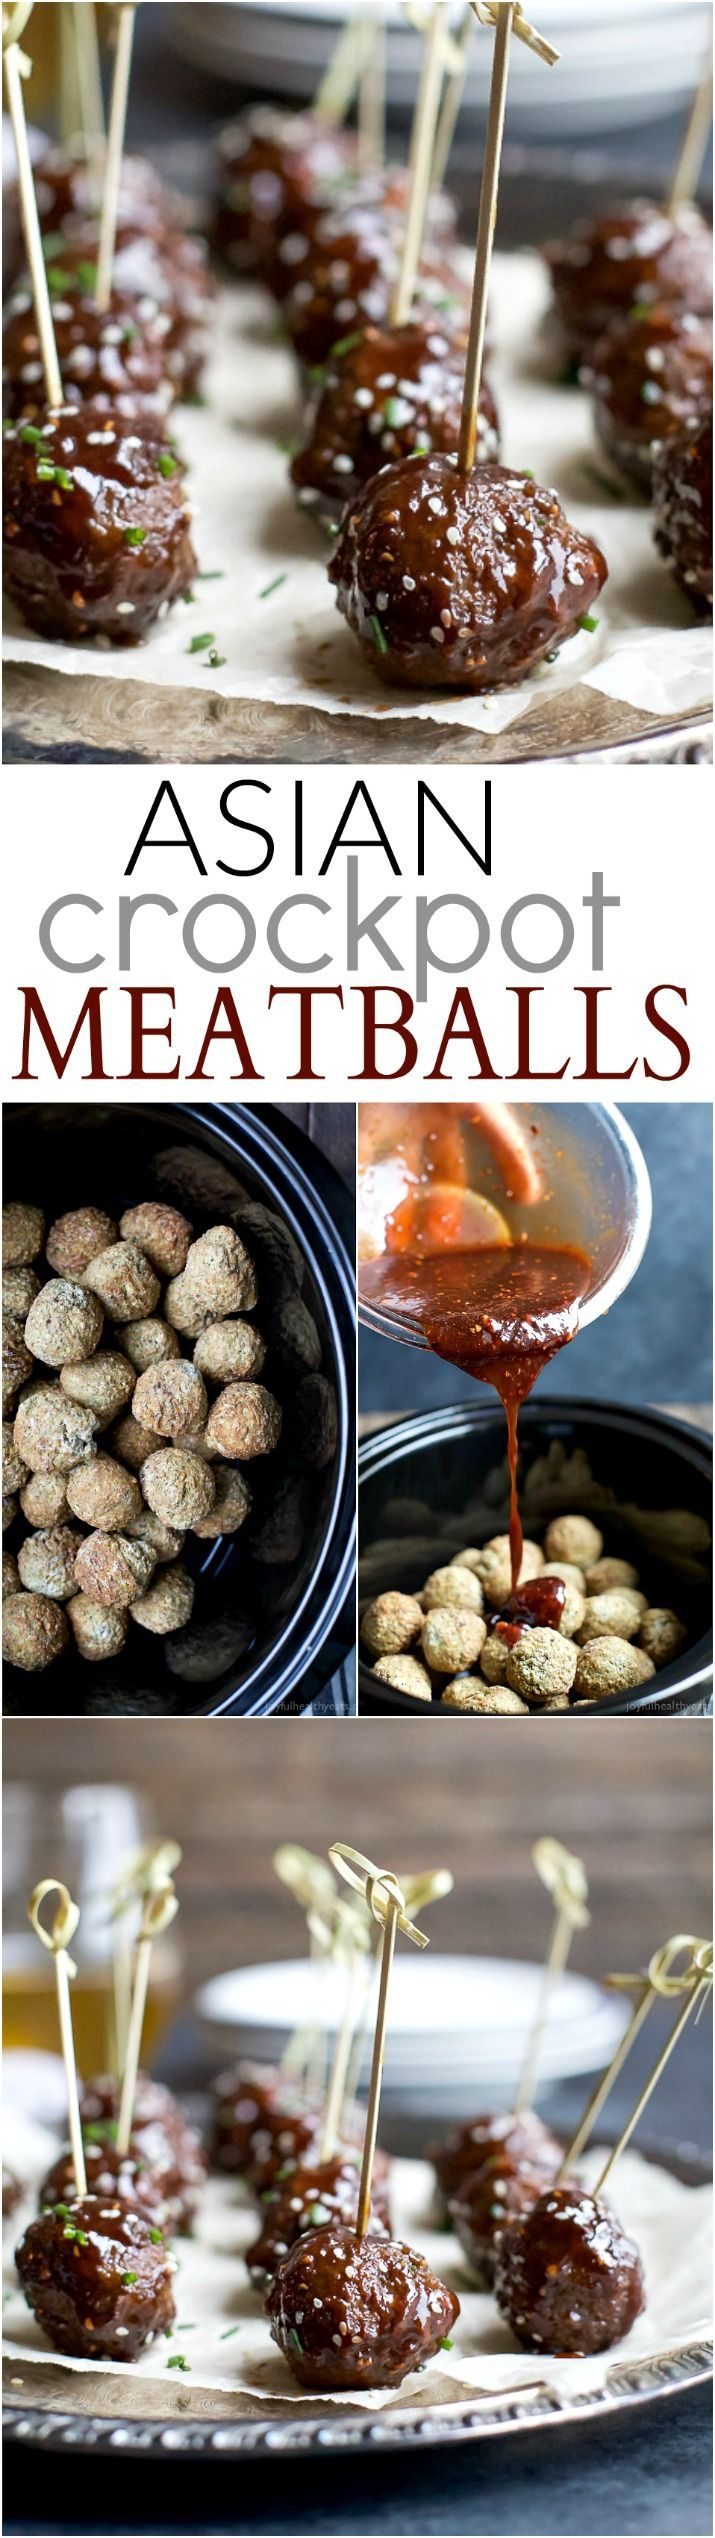 Asian Crockpot Meatballs covered in a sweet and spicy sauce you'll swoon over! This holiday appetizer recipe will be devoured in seconds! | joyfulhealthyeats.com (Christmas Recipes Appetizers)